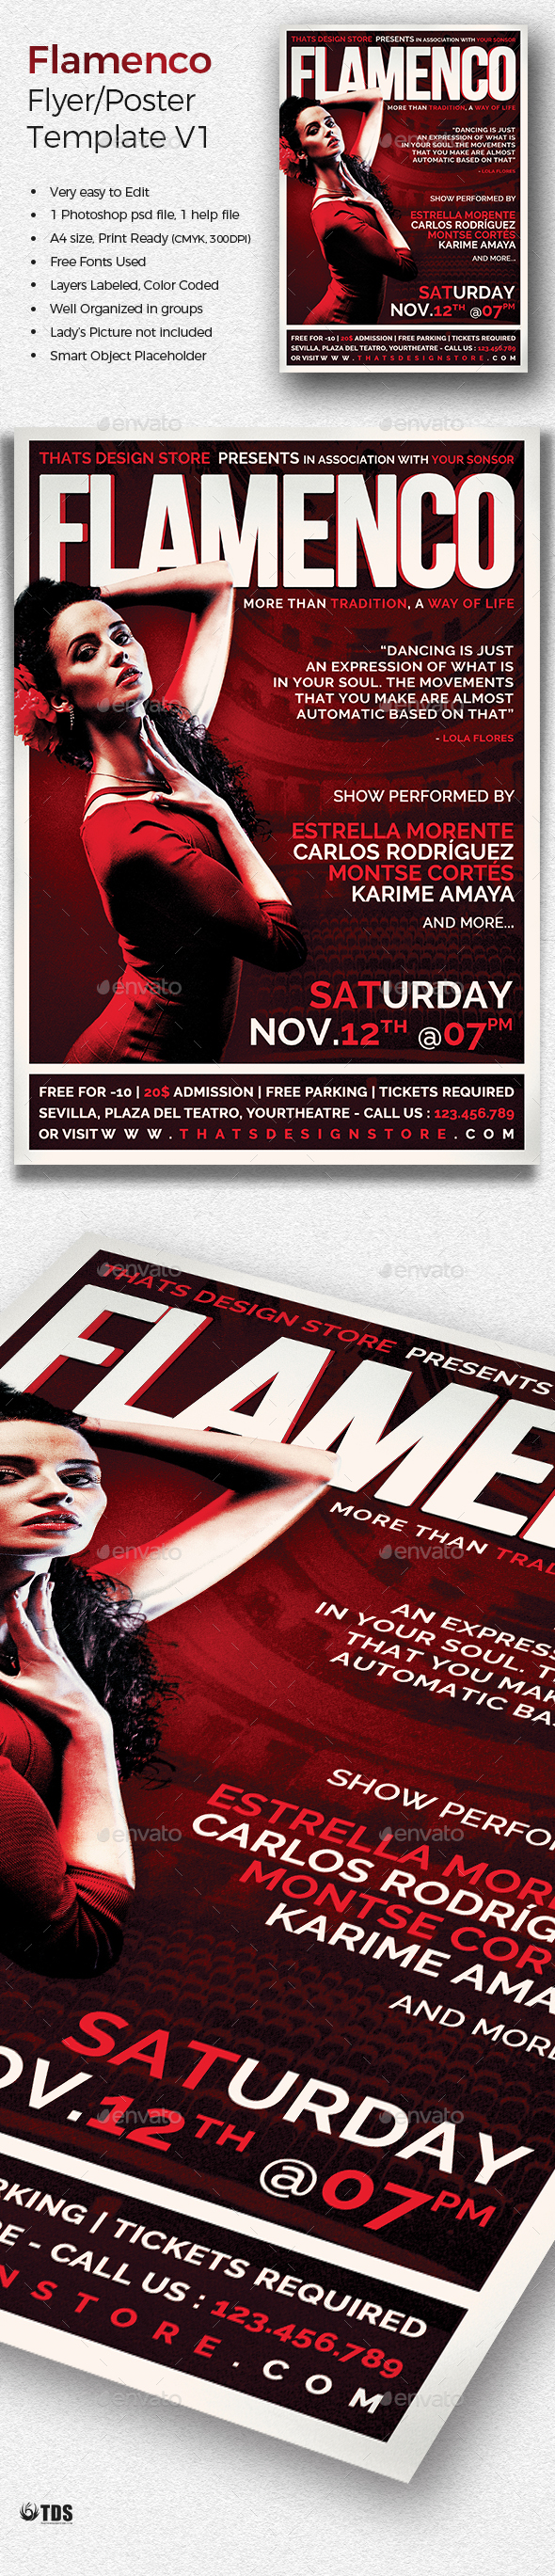 Flamenco Flyer Template V1 - Concerts Events